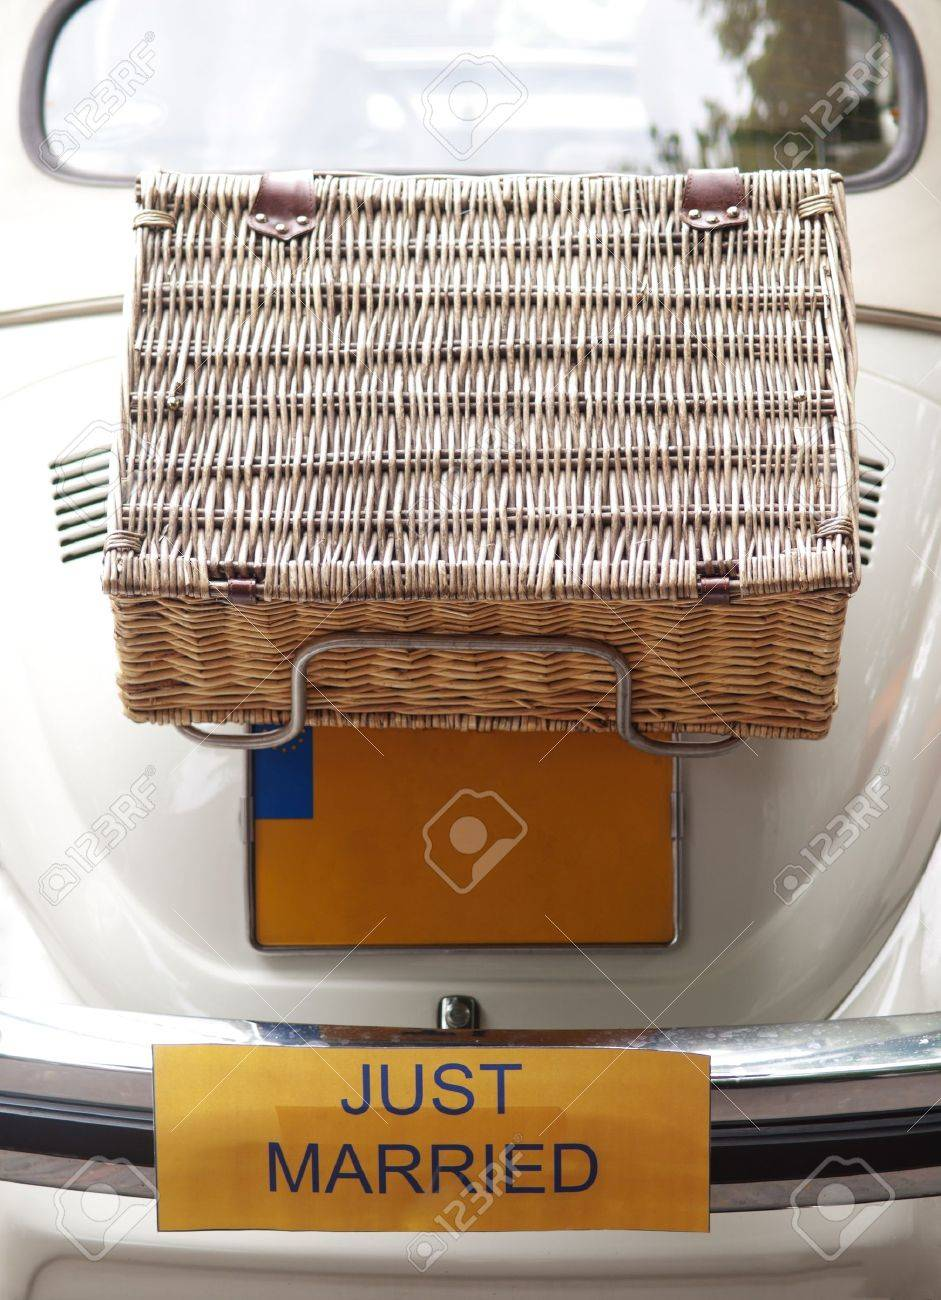 Just married car Stock Photo - 10180595